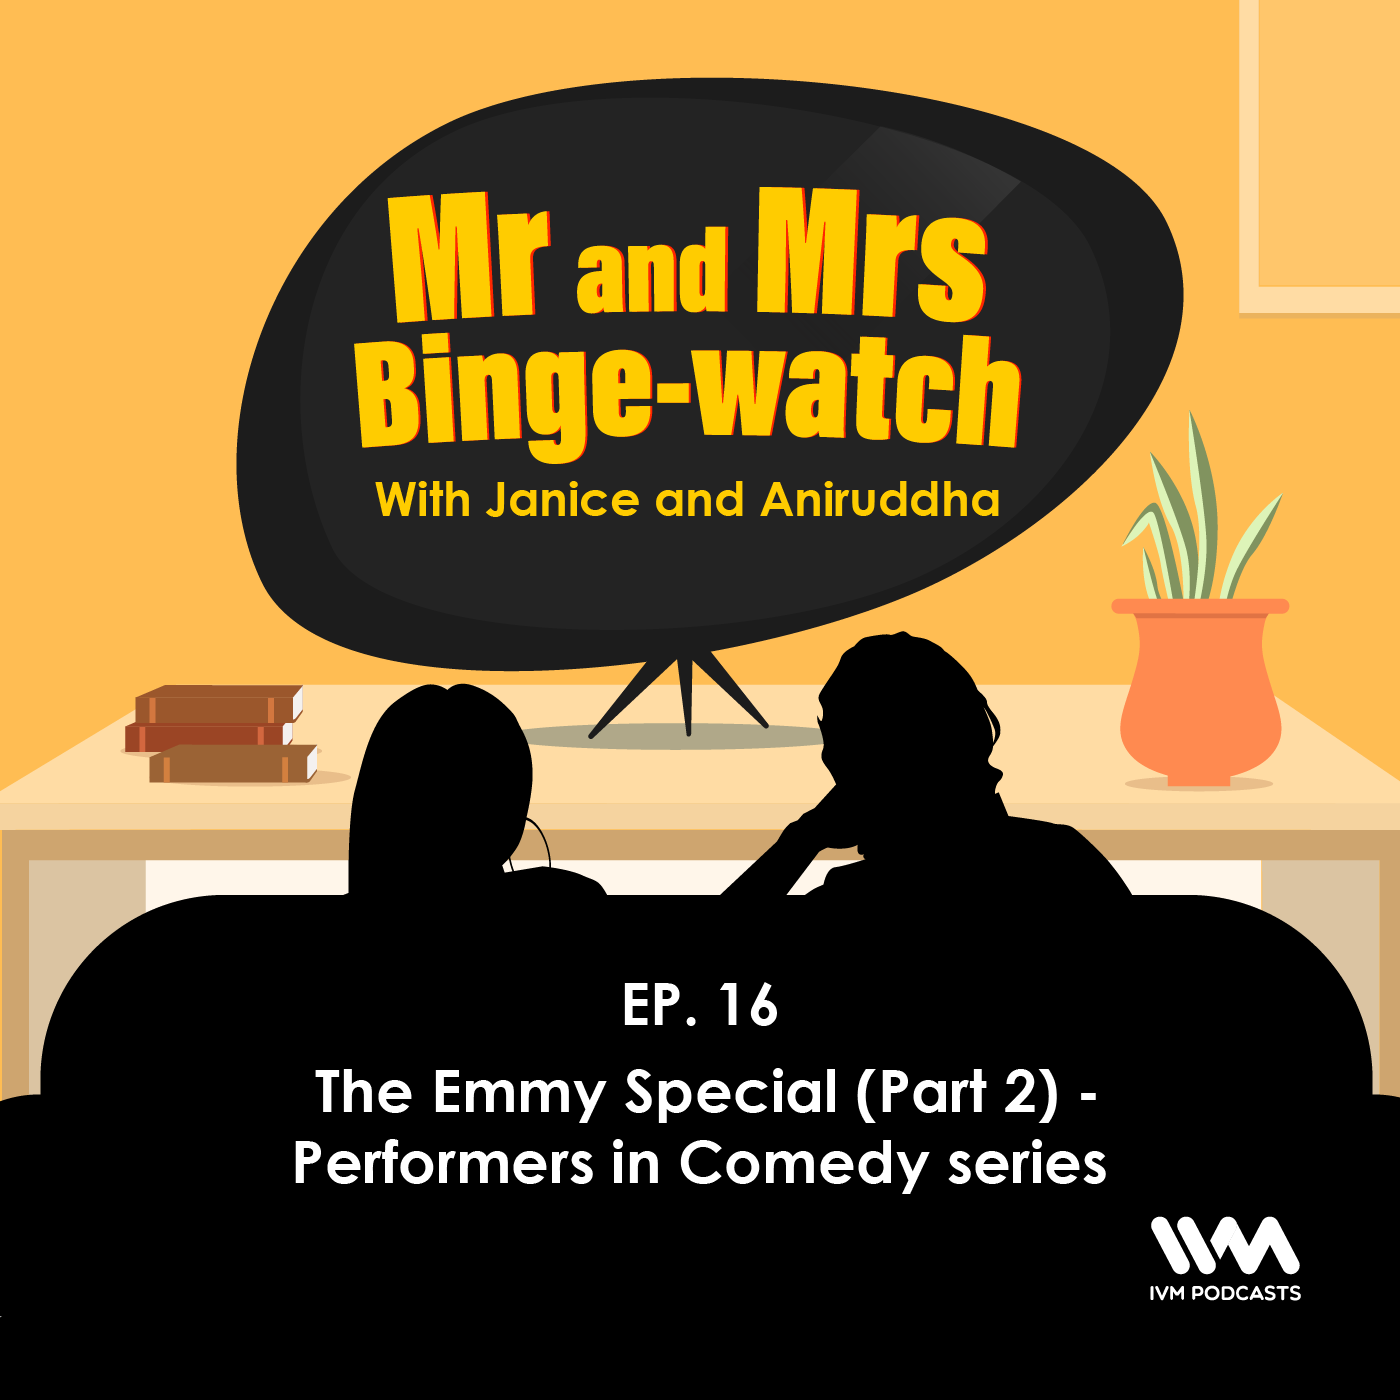 Ep. 16: The Emmy Special (Part 2) - Performers in Comedy series